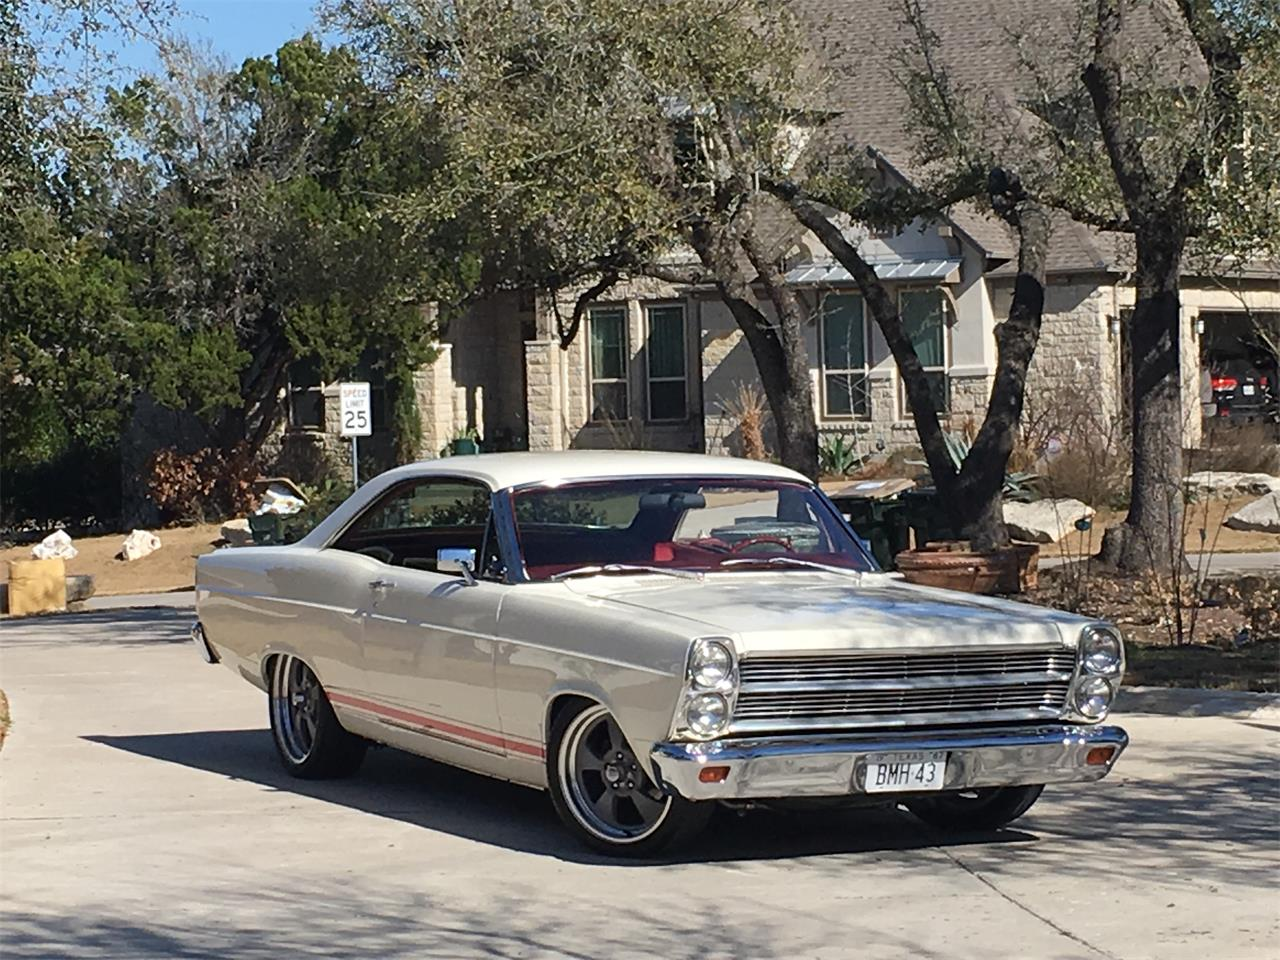 Large picture of 67 fairlane 500 mqrl